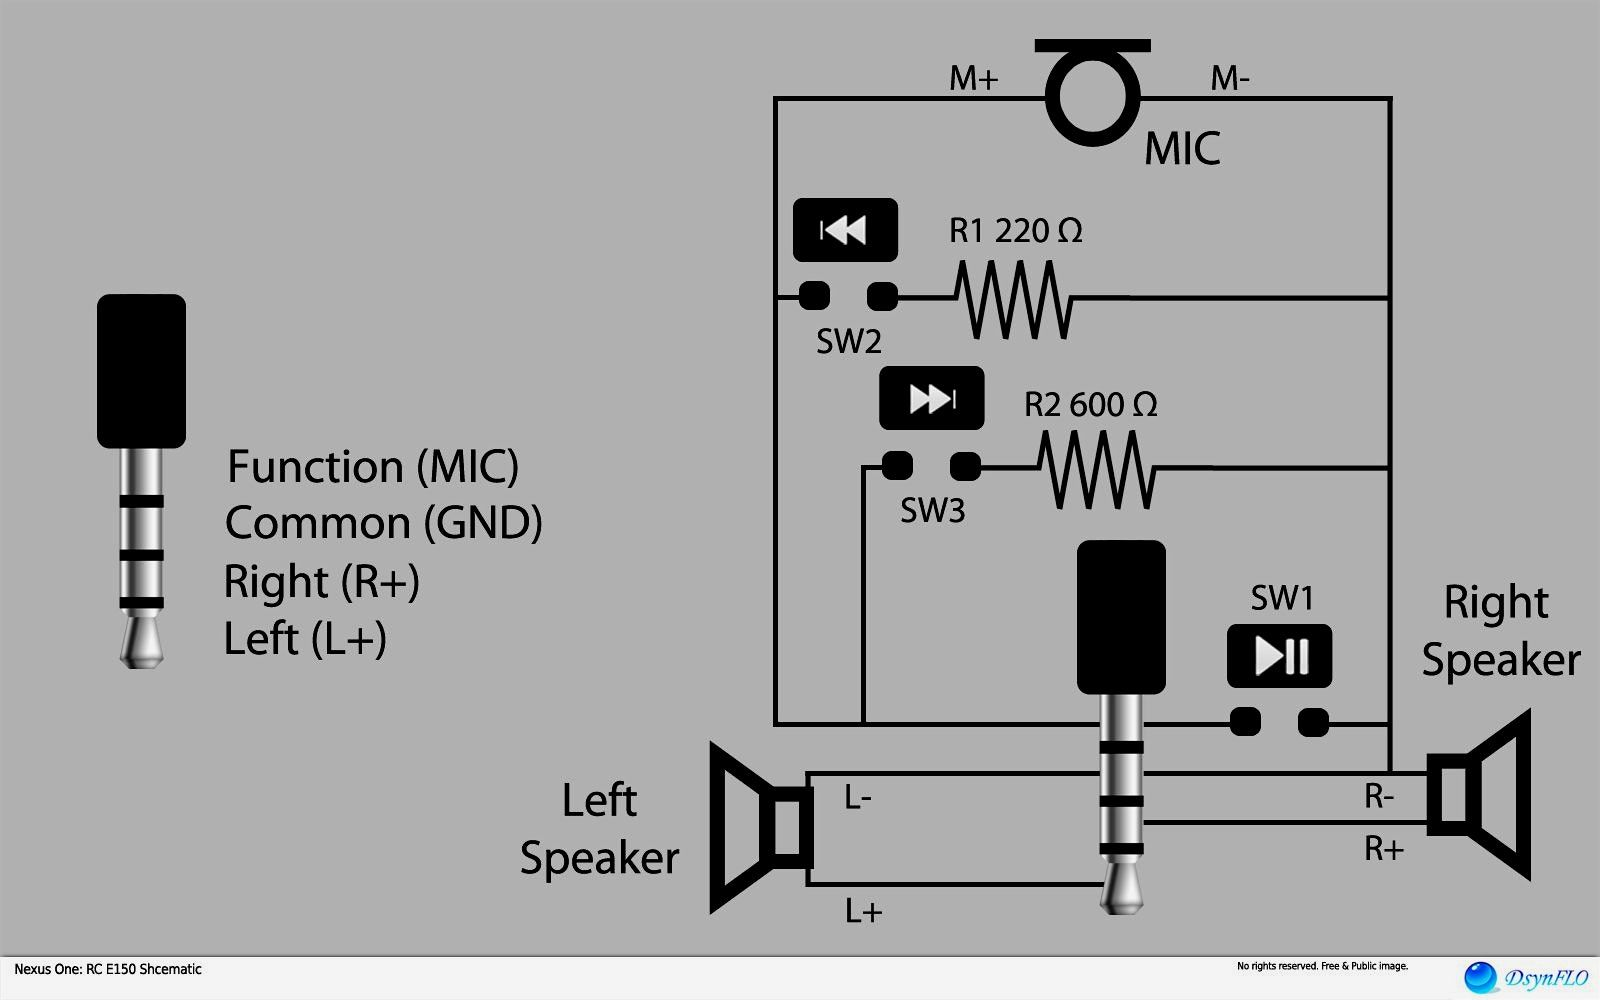 medium resolution of stereo headphone jack wiring schematic simple wiring diagrams rh 48 studio011 de 1 8 headphone jack wiring diagram 3 5mm 4 pin audio plug wiring